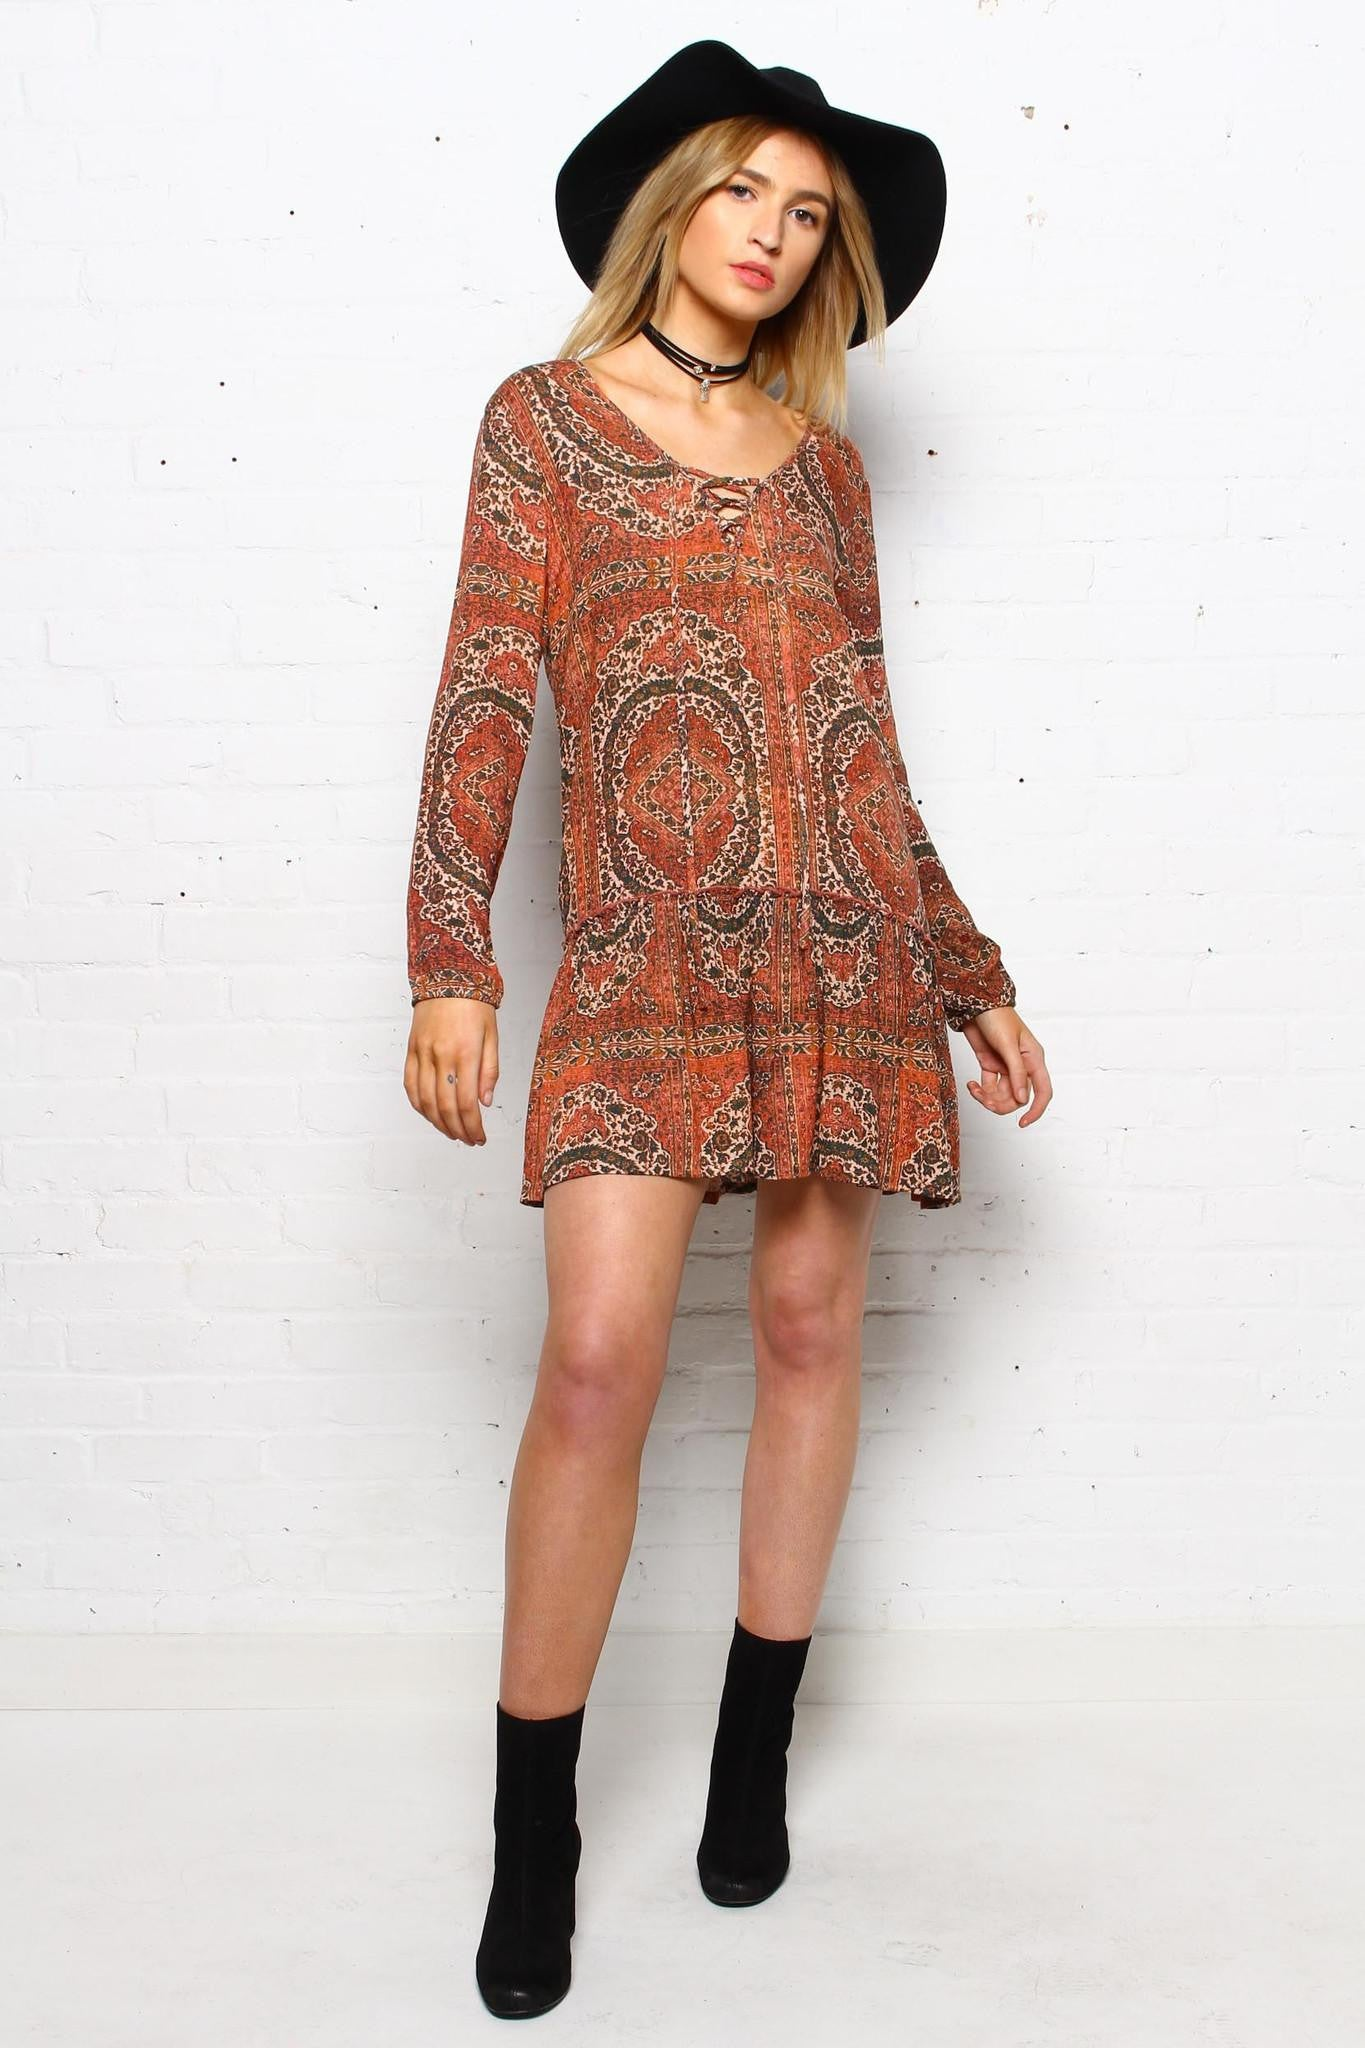 Knot Sisters Haight Street Dress